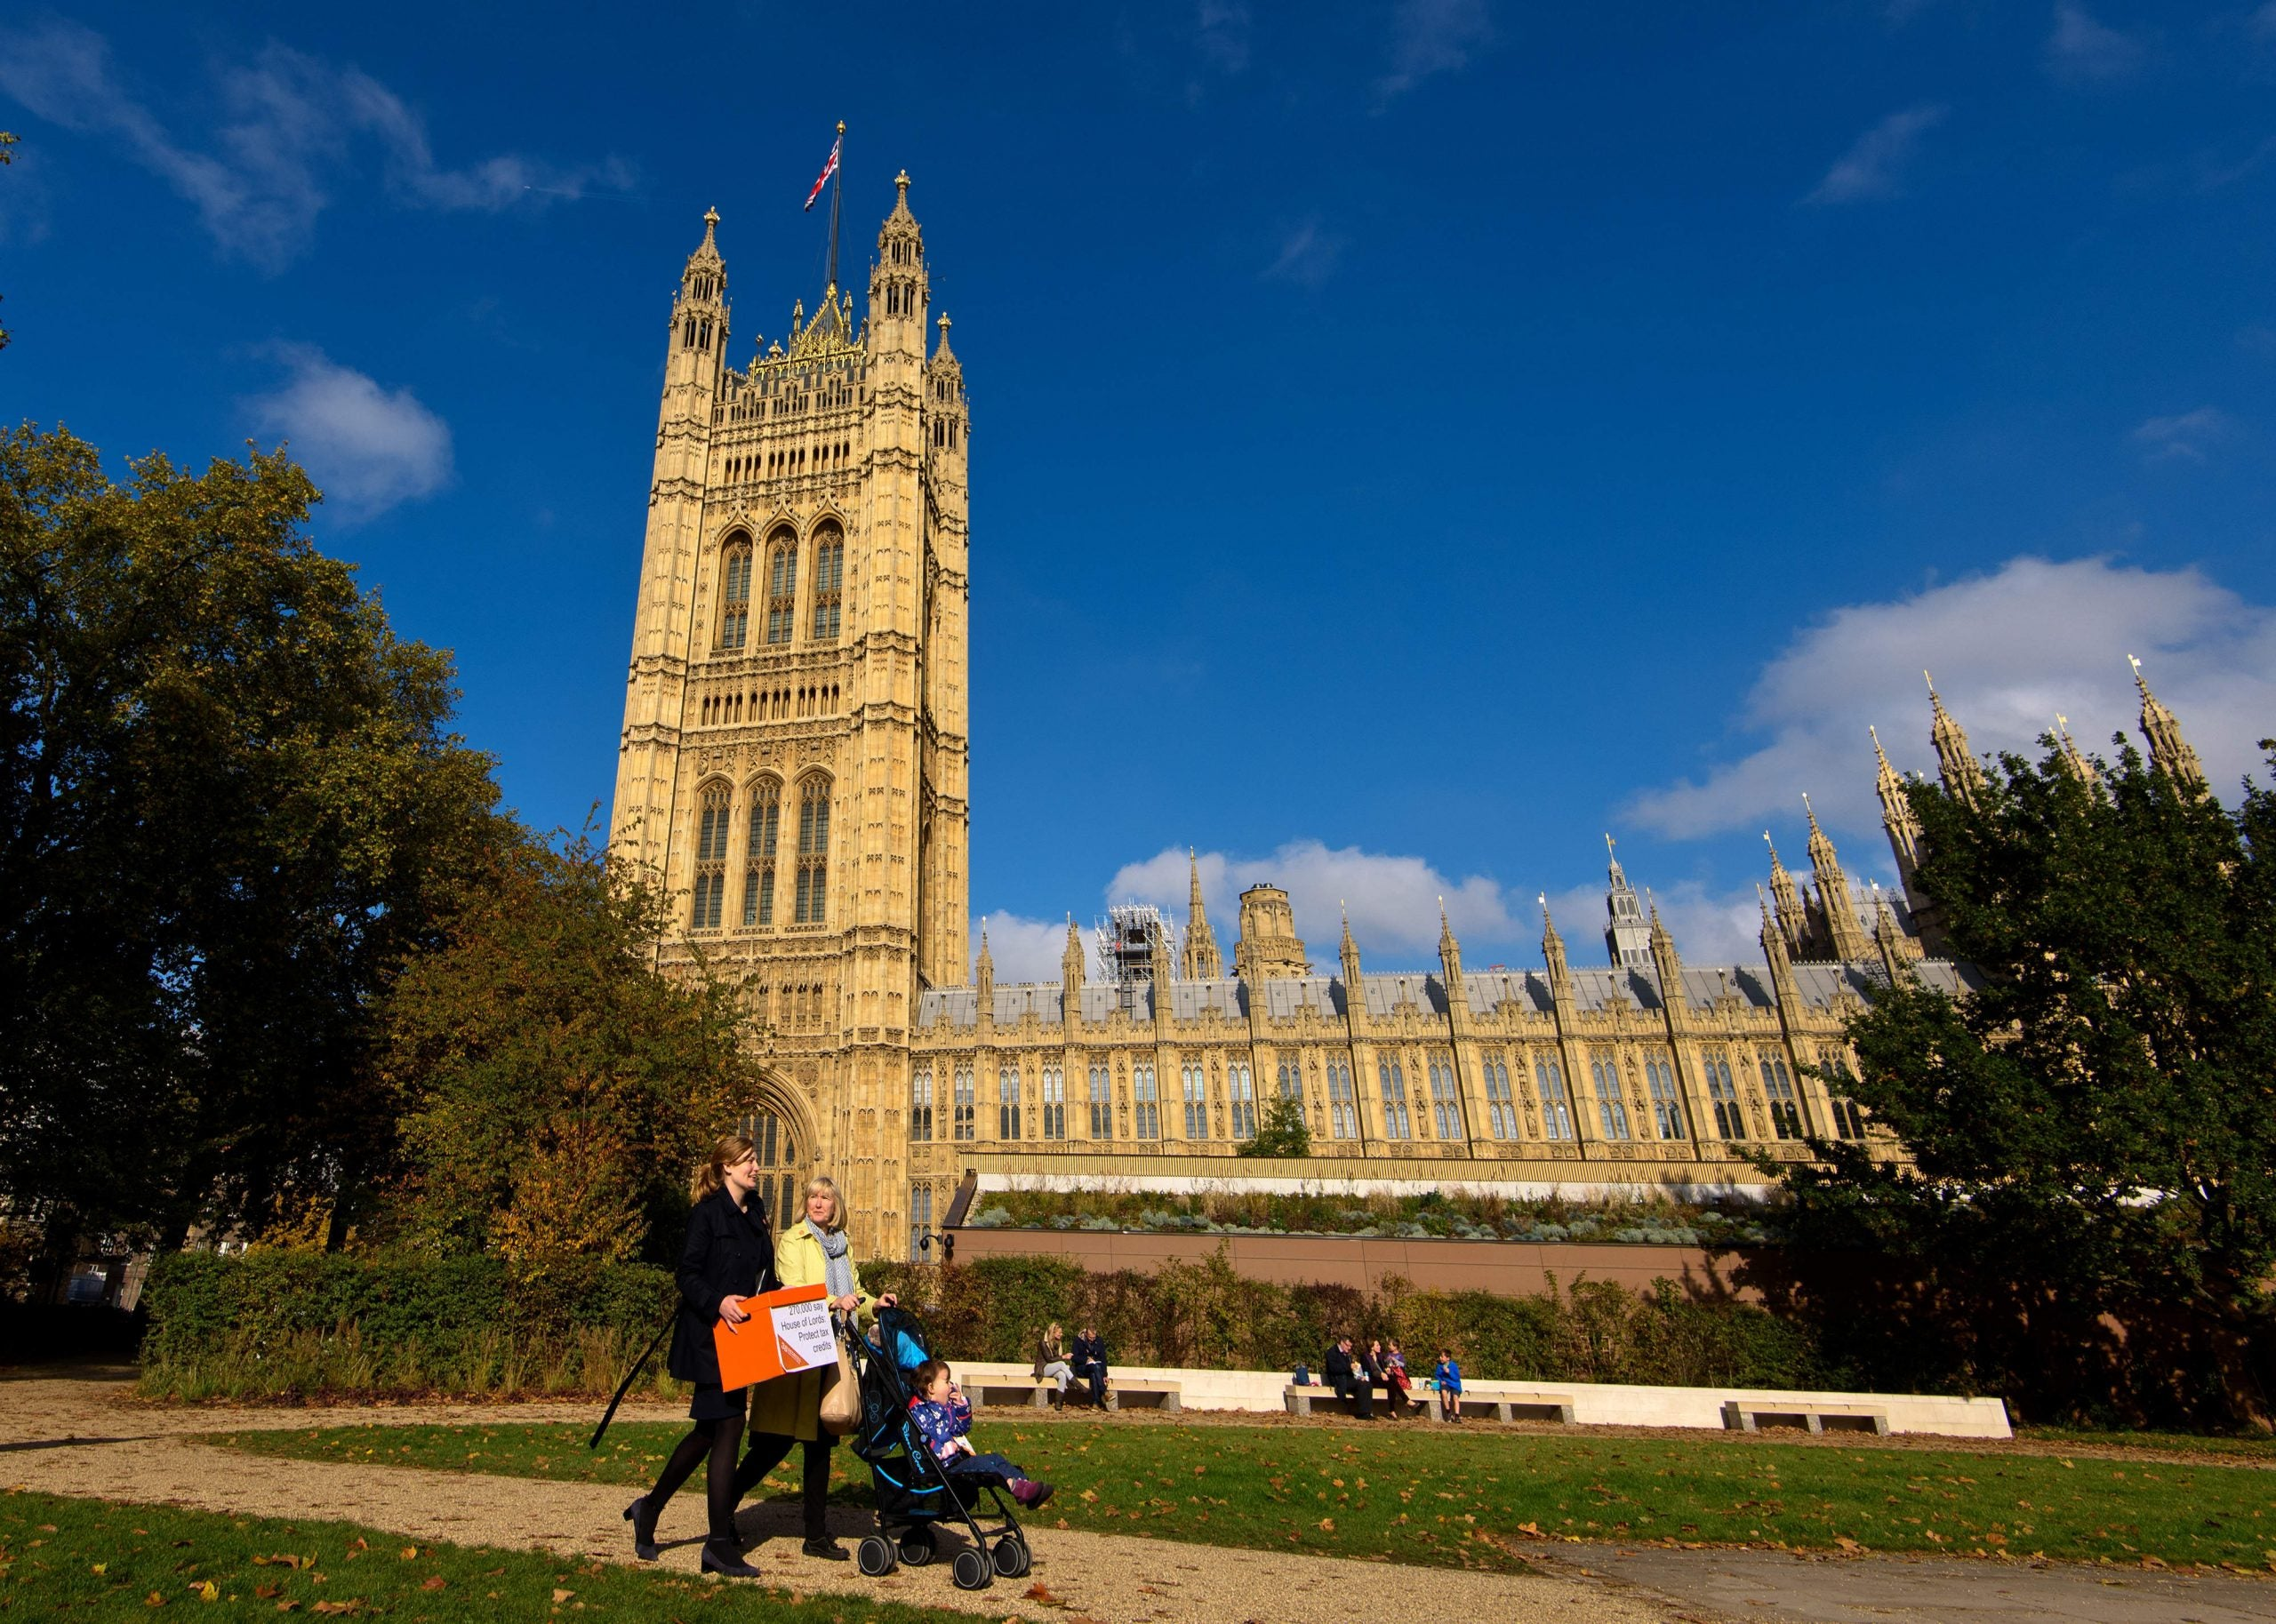 We need to do much more to make the Houses of Parliament a 21st century employer